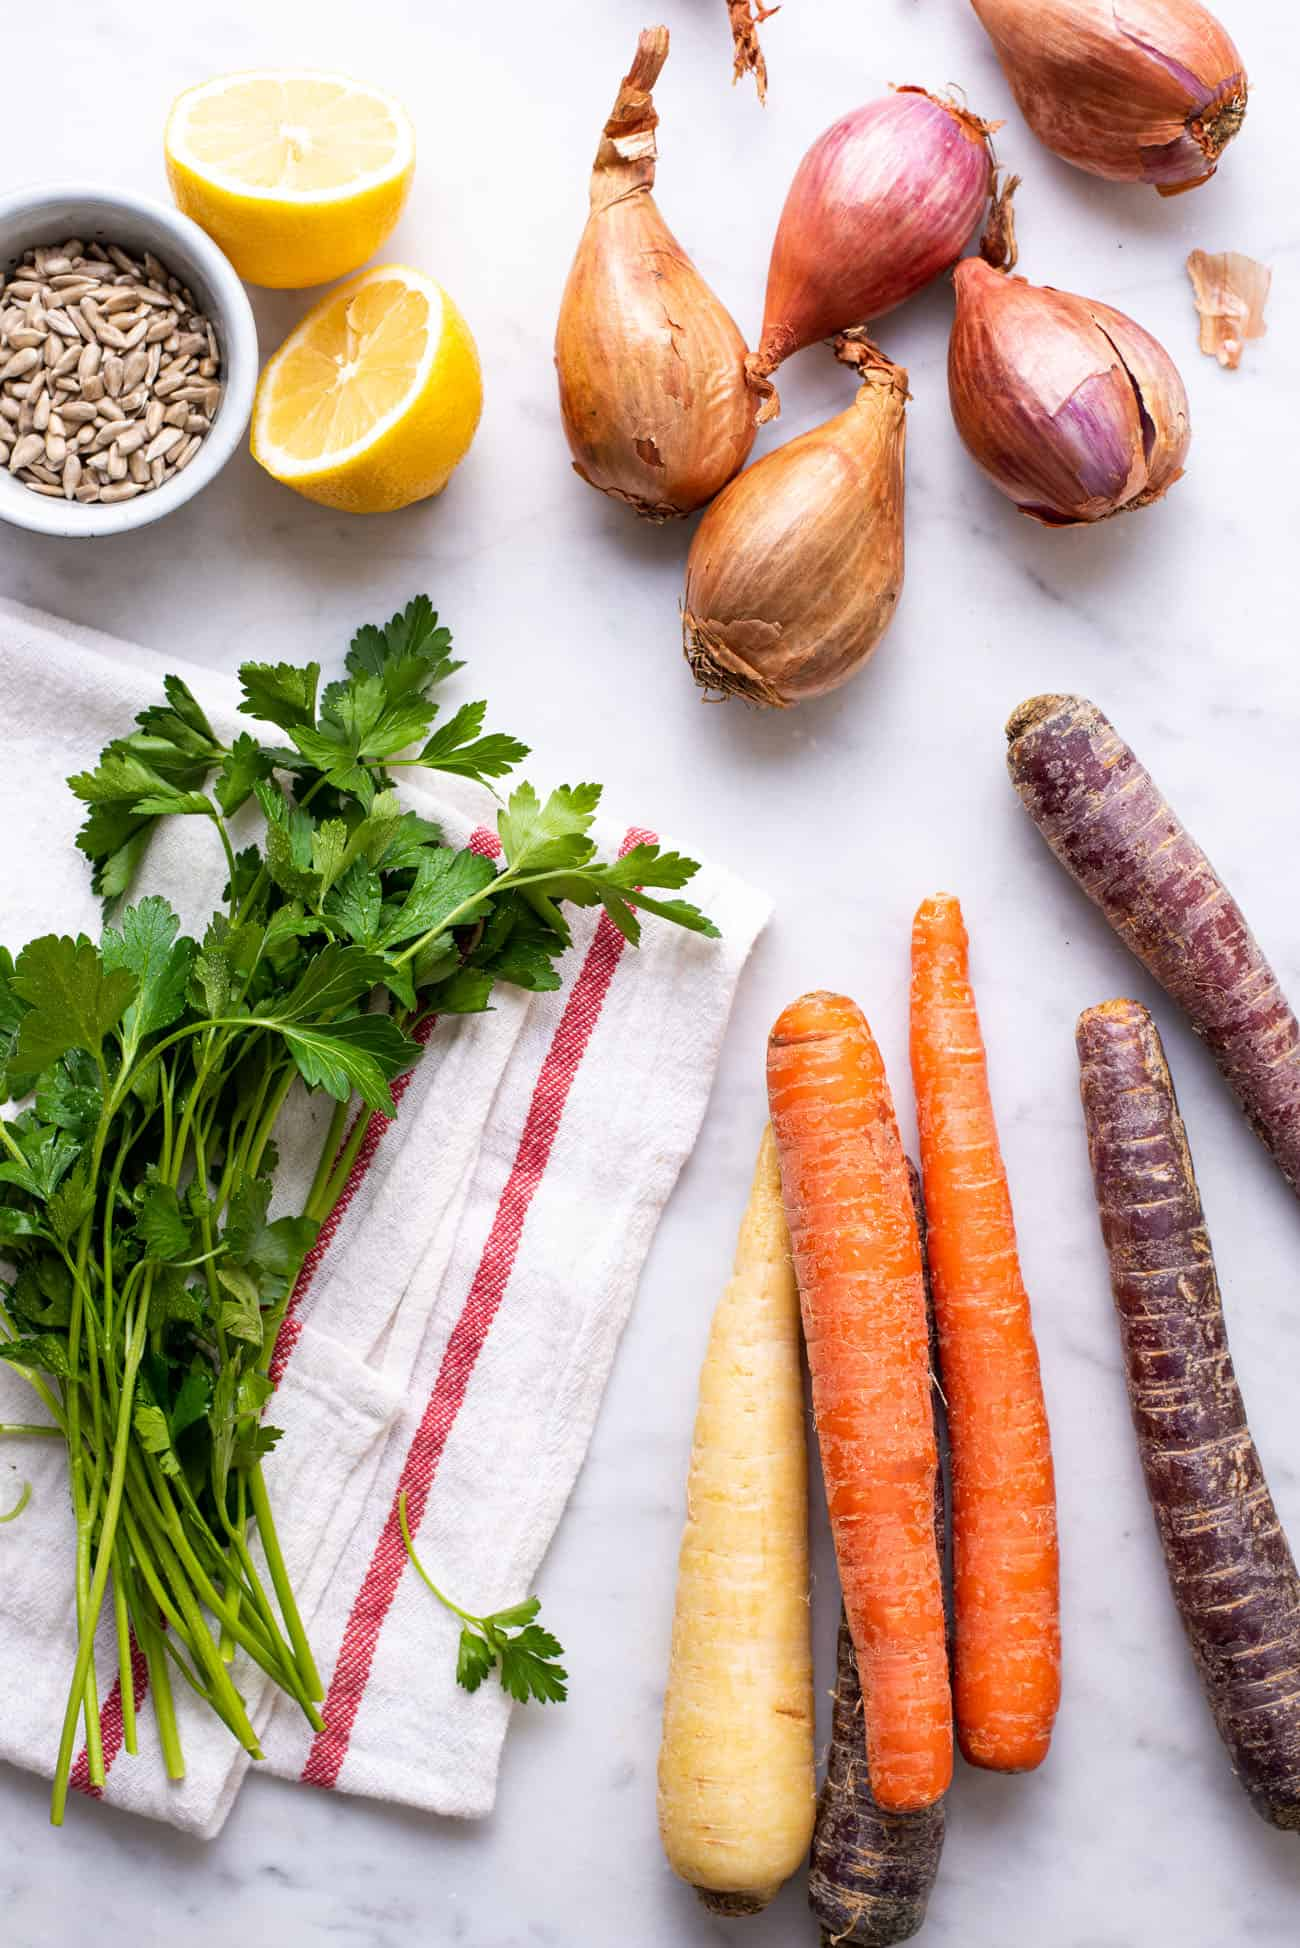 Parsley, sunflower seeds, lemon, carrots, and shallots gathered on a marble table